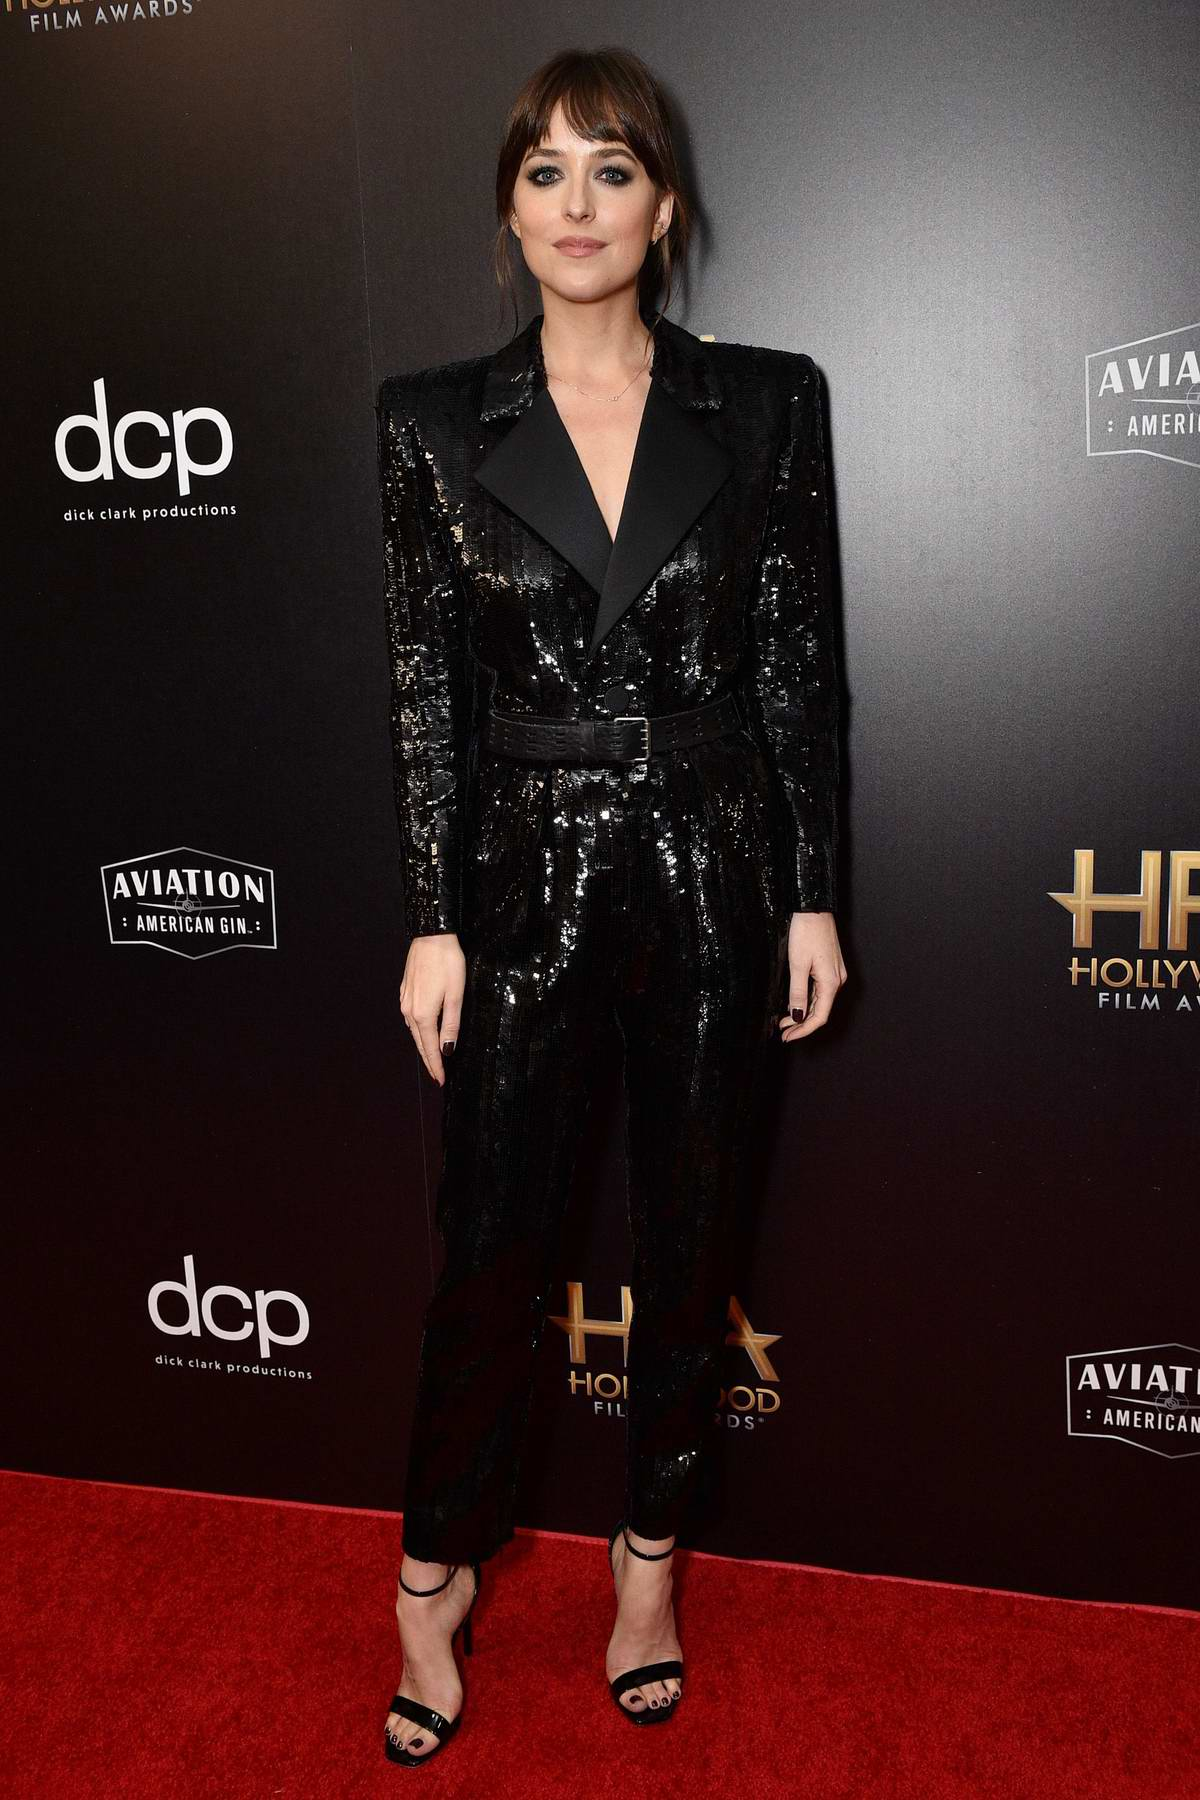 Dakota Johnson attends the 23rd Annual Hollywood Film Awards at The Beverly Hilton Hotel in Beverly Hills, Los Angeles